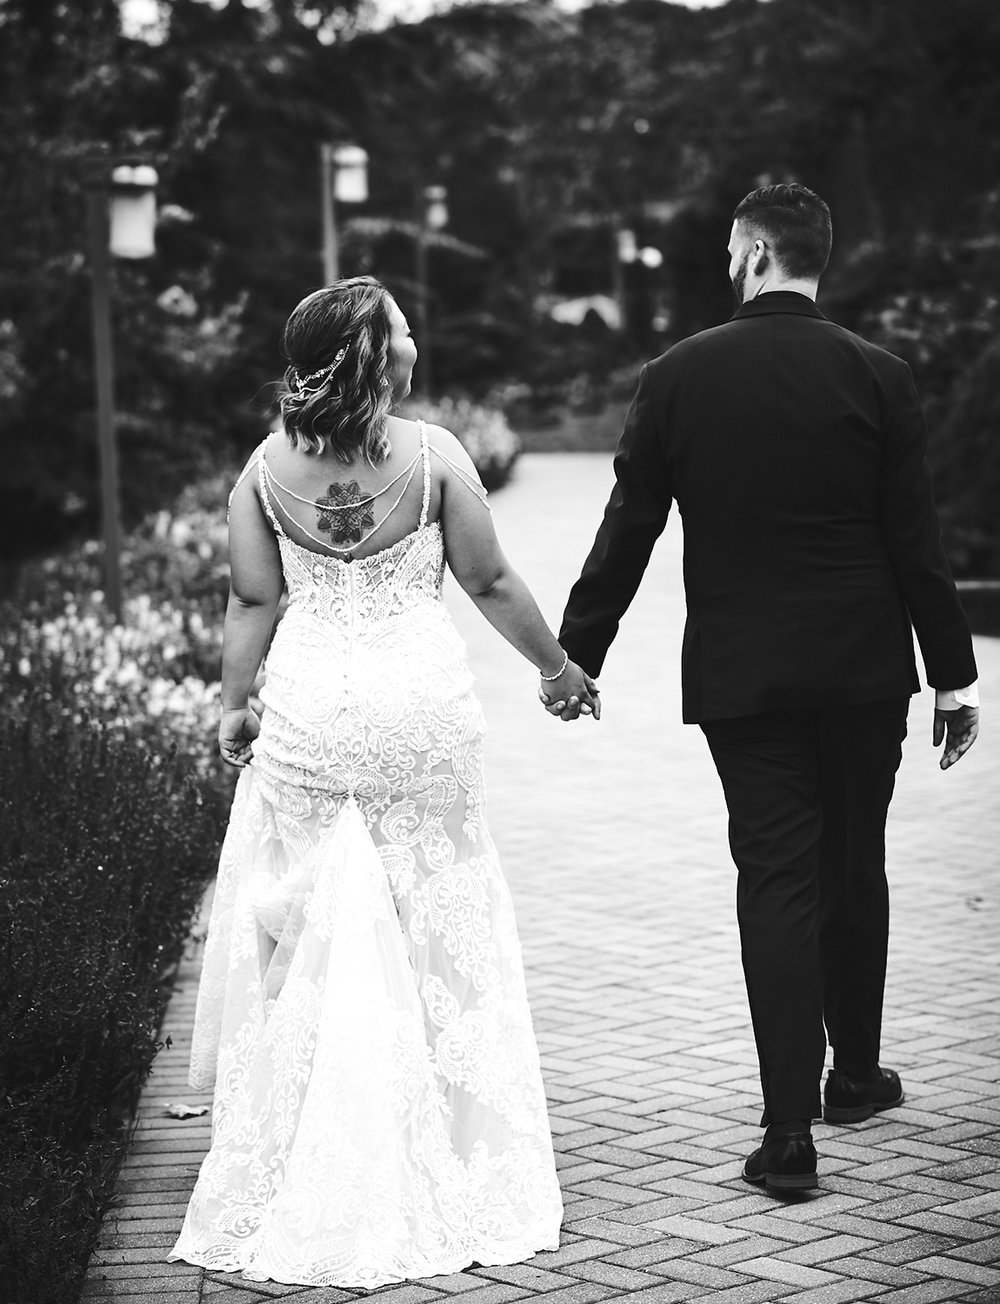 180922_CrestHollowCountryClubWeddingPhotography_LongIslandWeddingPhotographer_By_BriJohnsonWeddings_0148.jpg